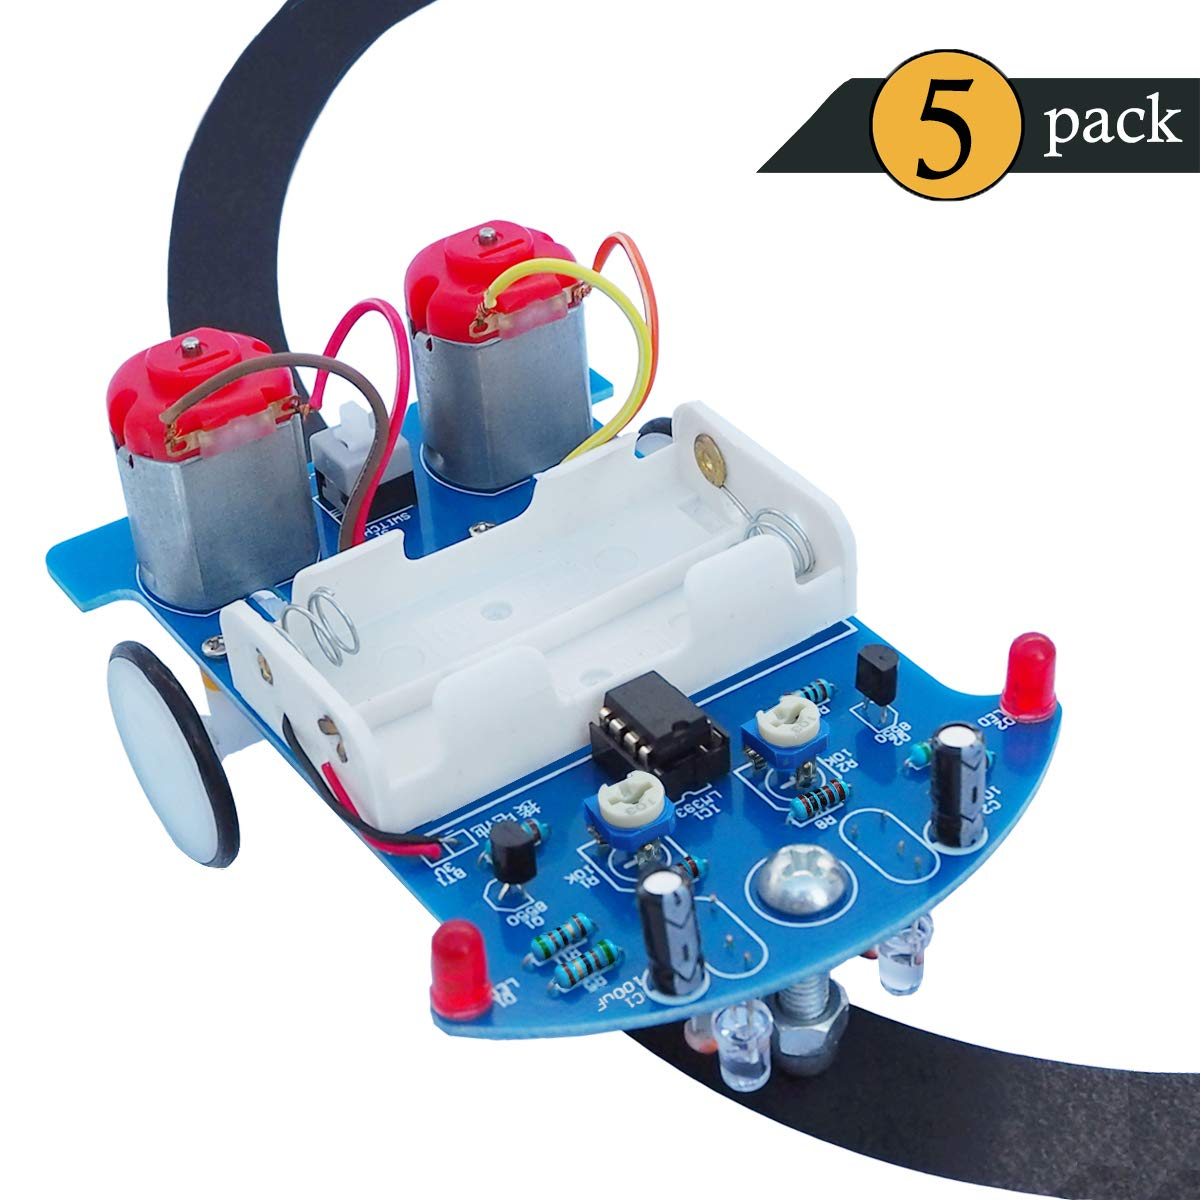 Vogurtime 5 Pack D2-5 Smart Car Kit Soldering Project Line Tracking Robot for Fun Educational Electronic Learning Practicing with English Manual by VOGURTIME